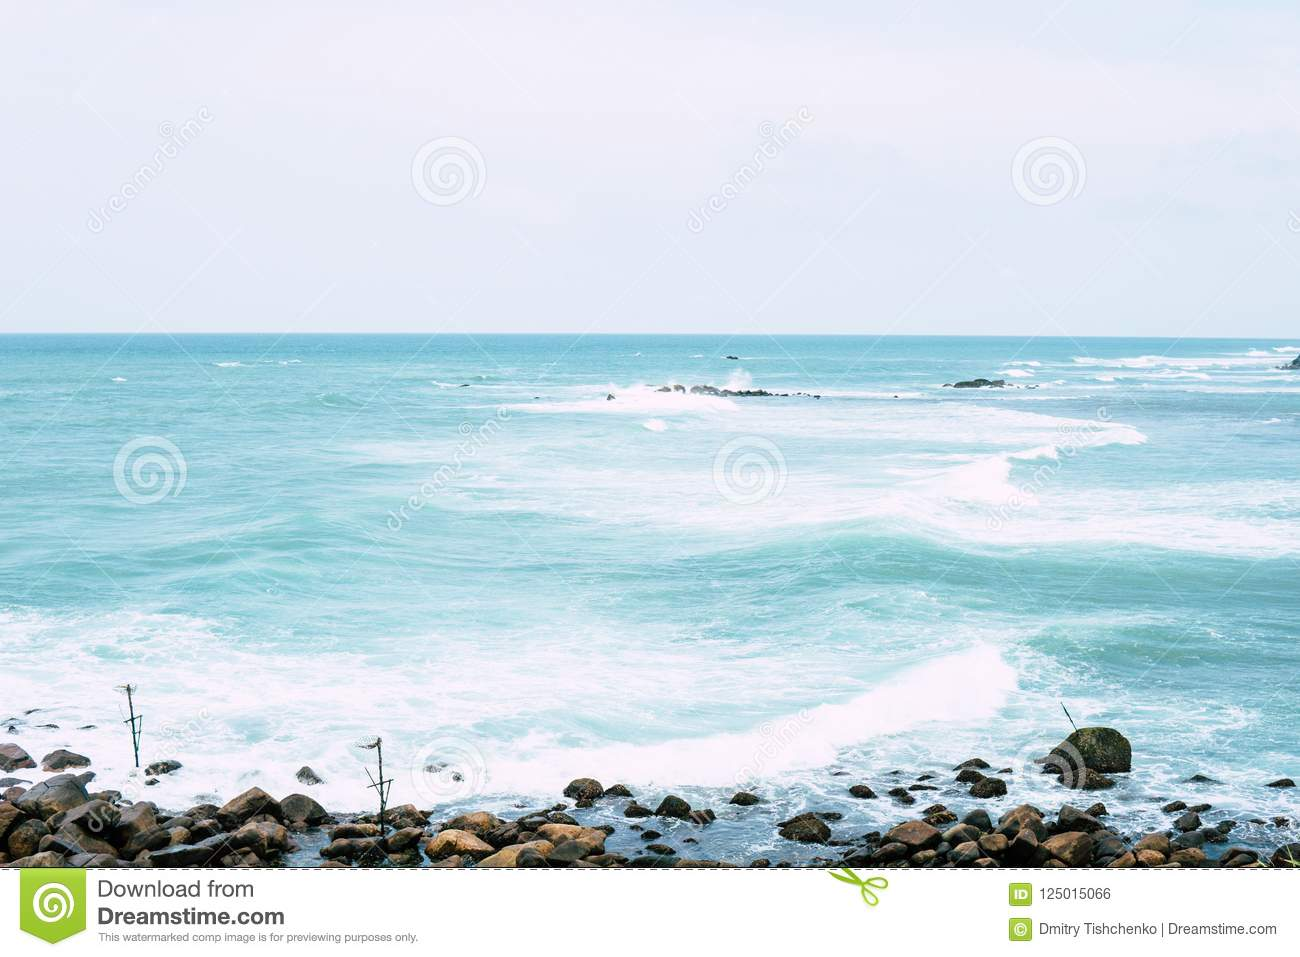 Download Beautiful Tropical Island Beach Landscape Fishing Boat Stock Photo Image Of Indian